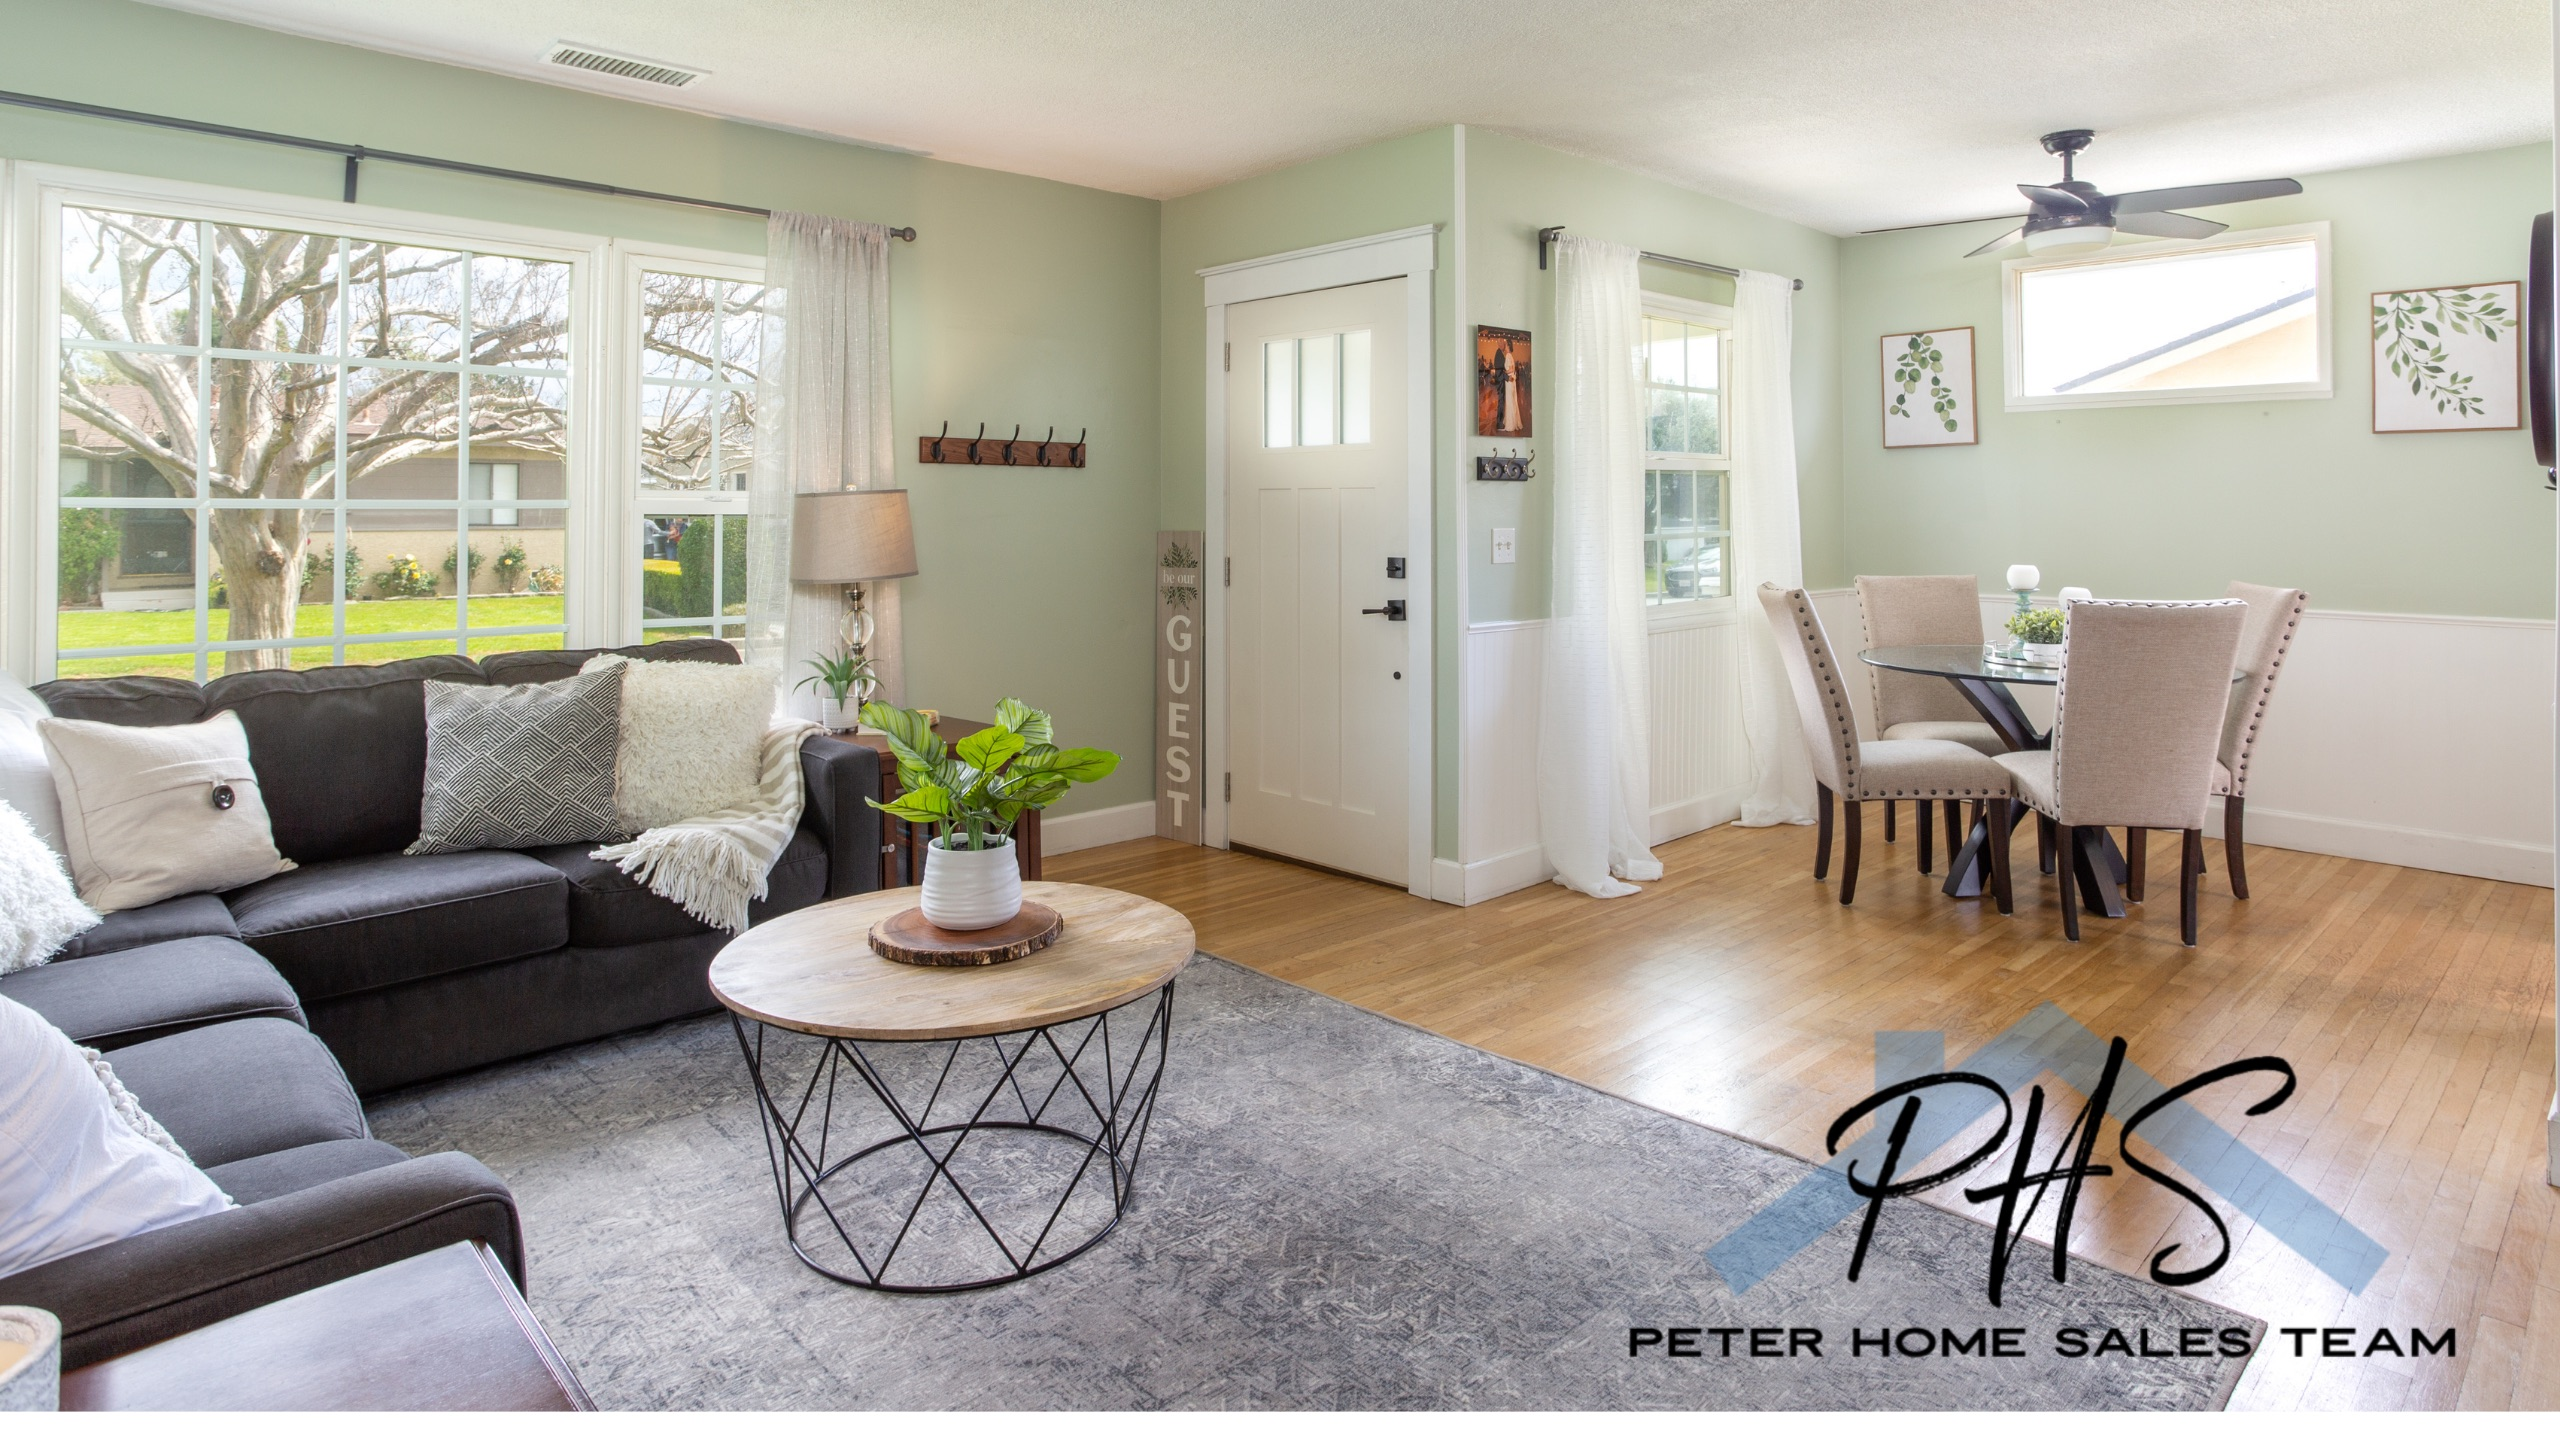 Staging to make your home Picture Perfect